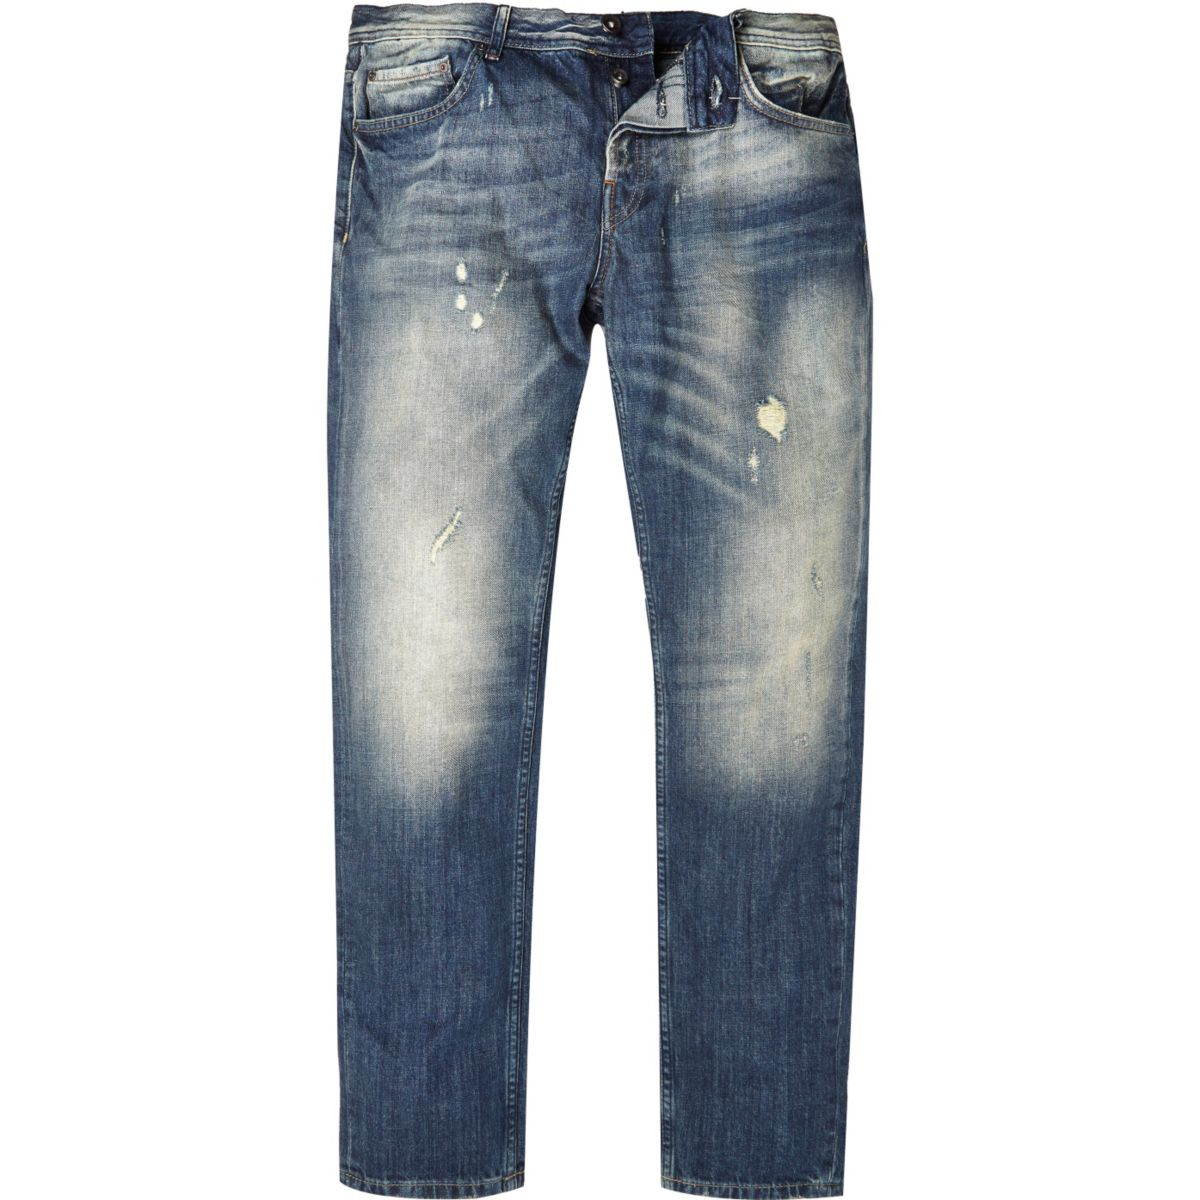 Dark blue distressed Only & Sons jeans